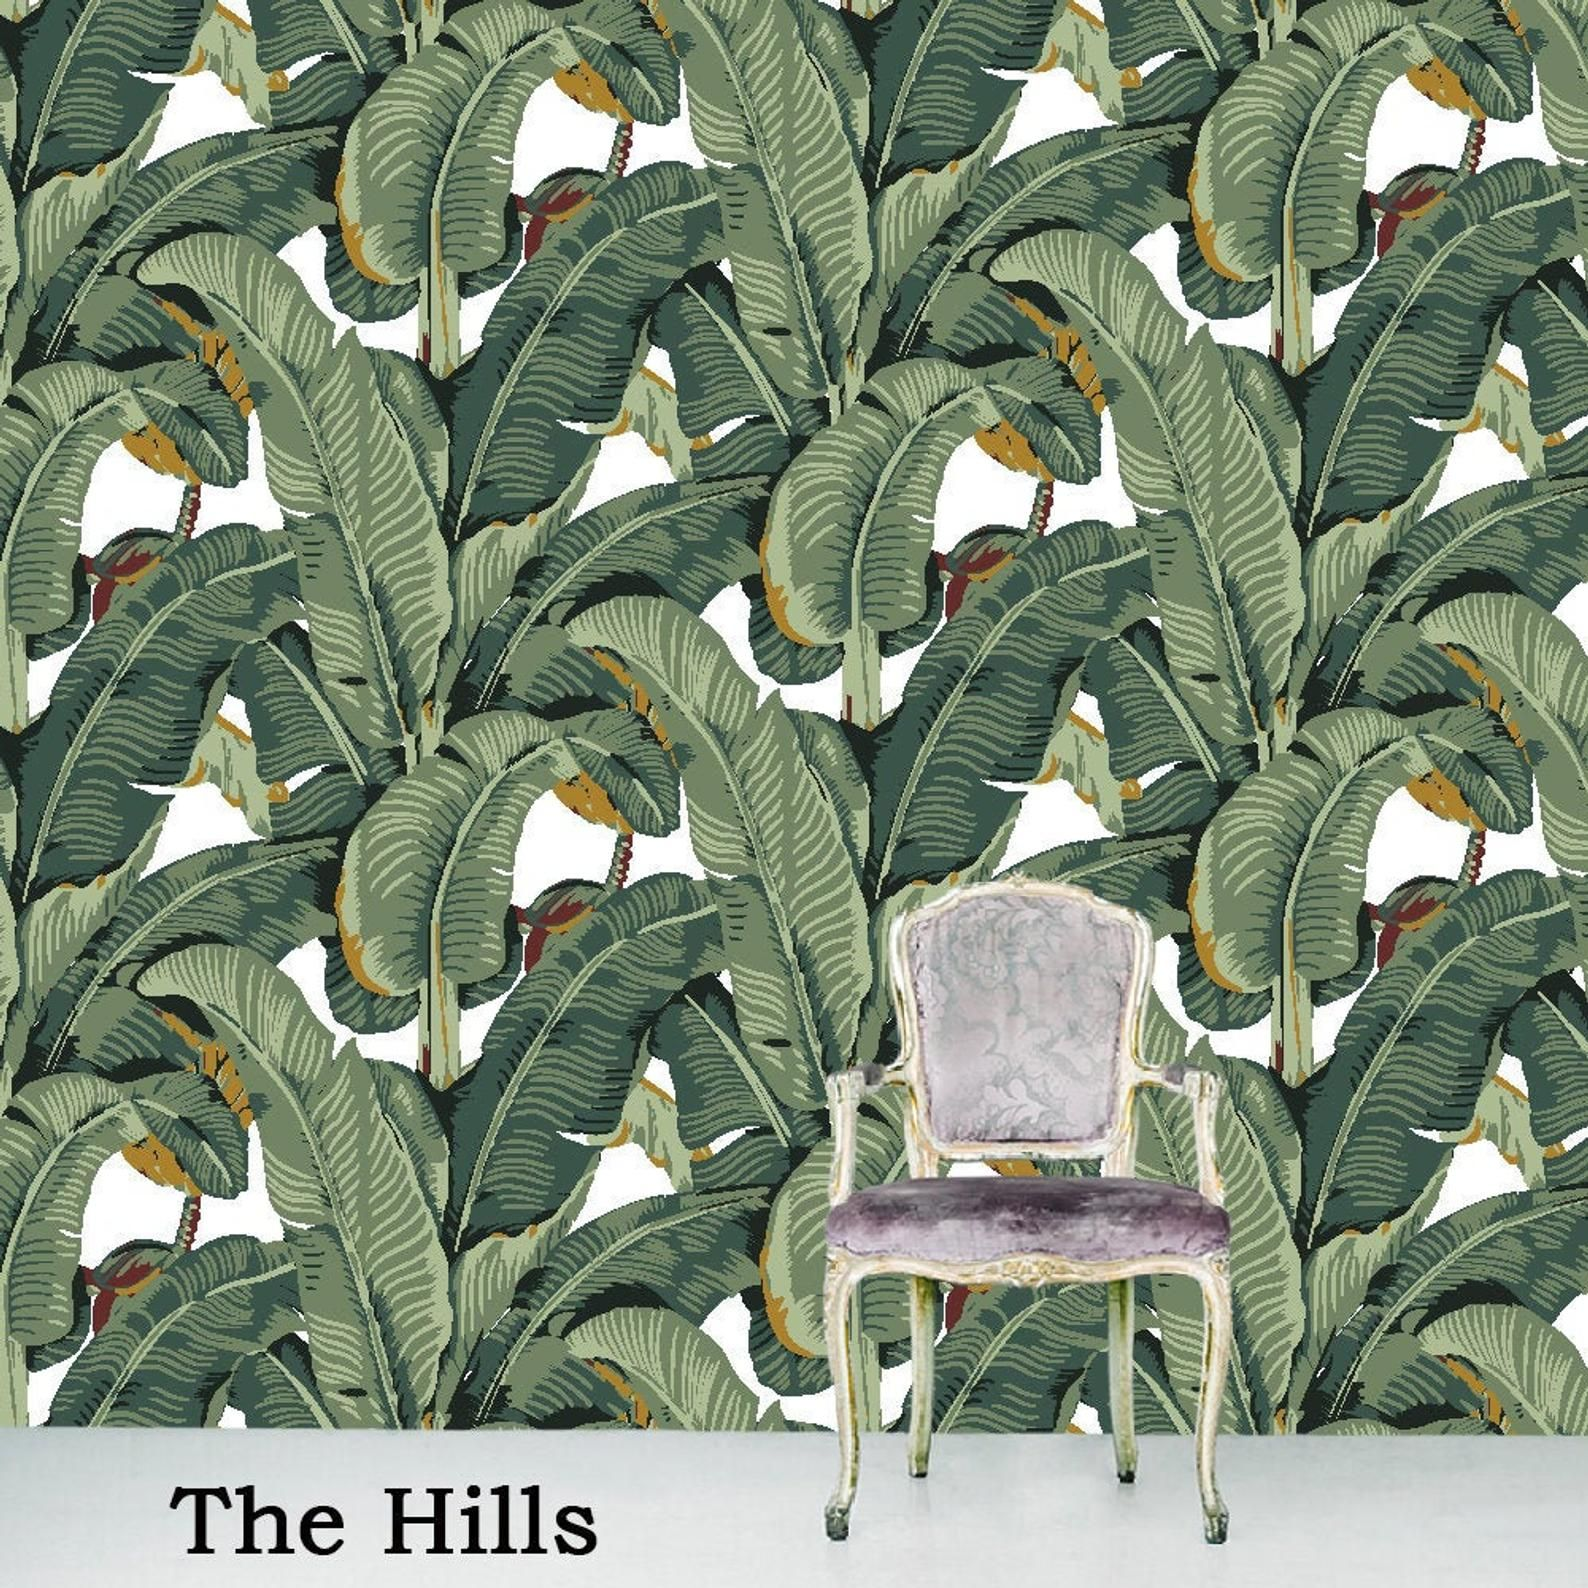 Banana Leaf Tropical Removable Wallpaper- Simply Peel and ...